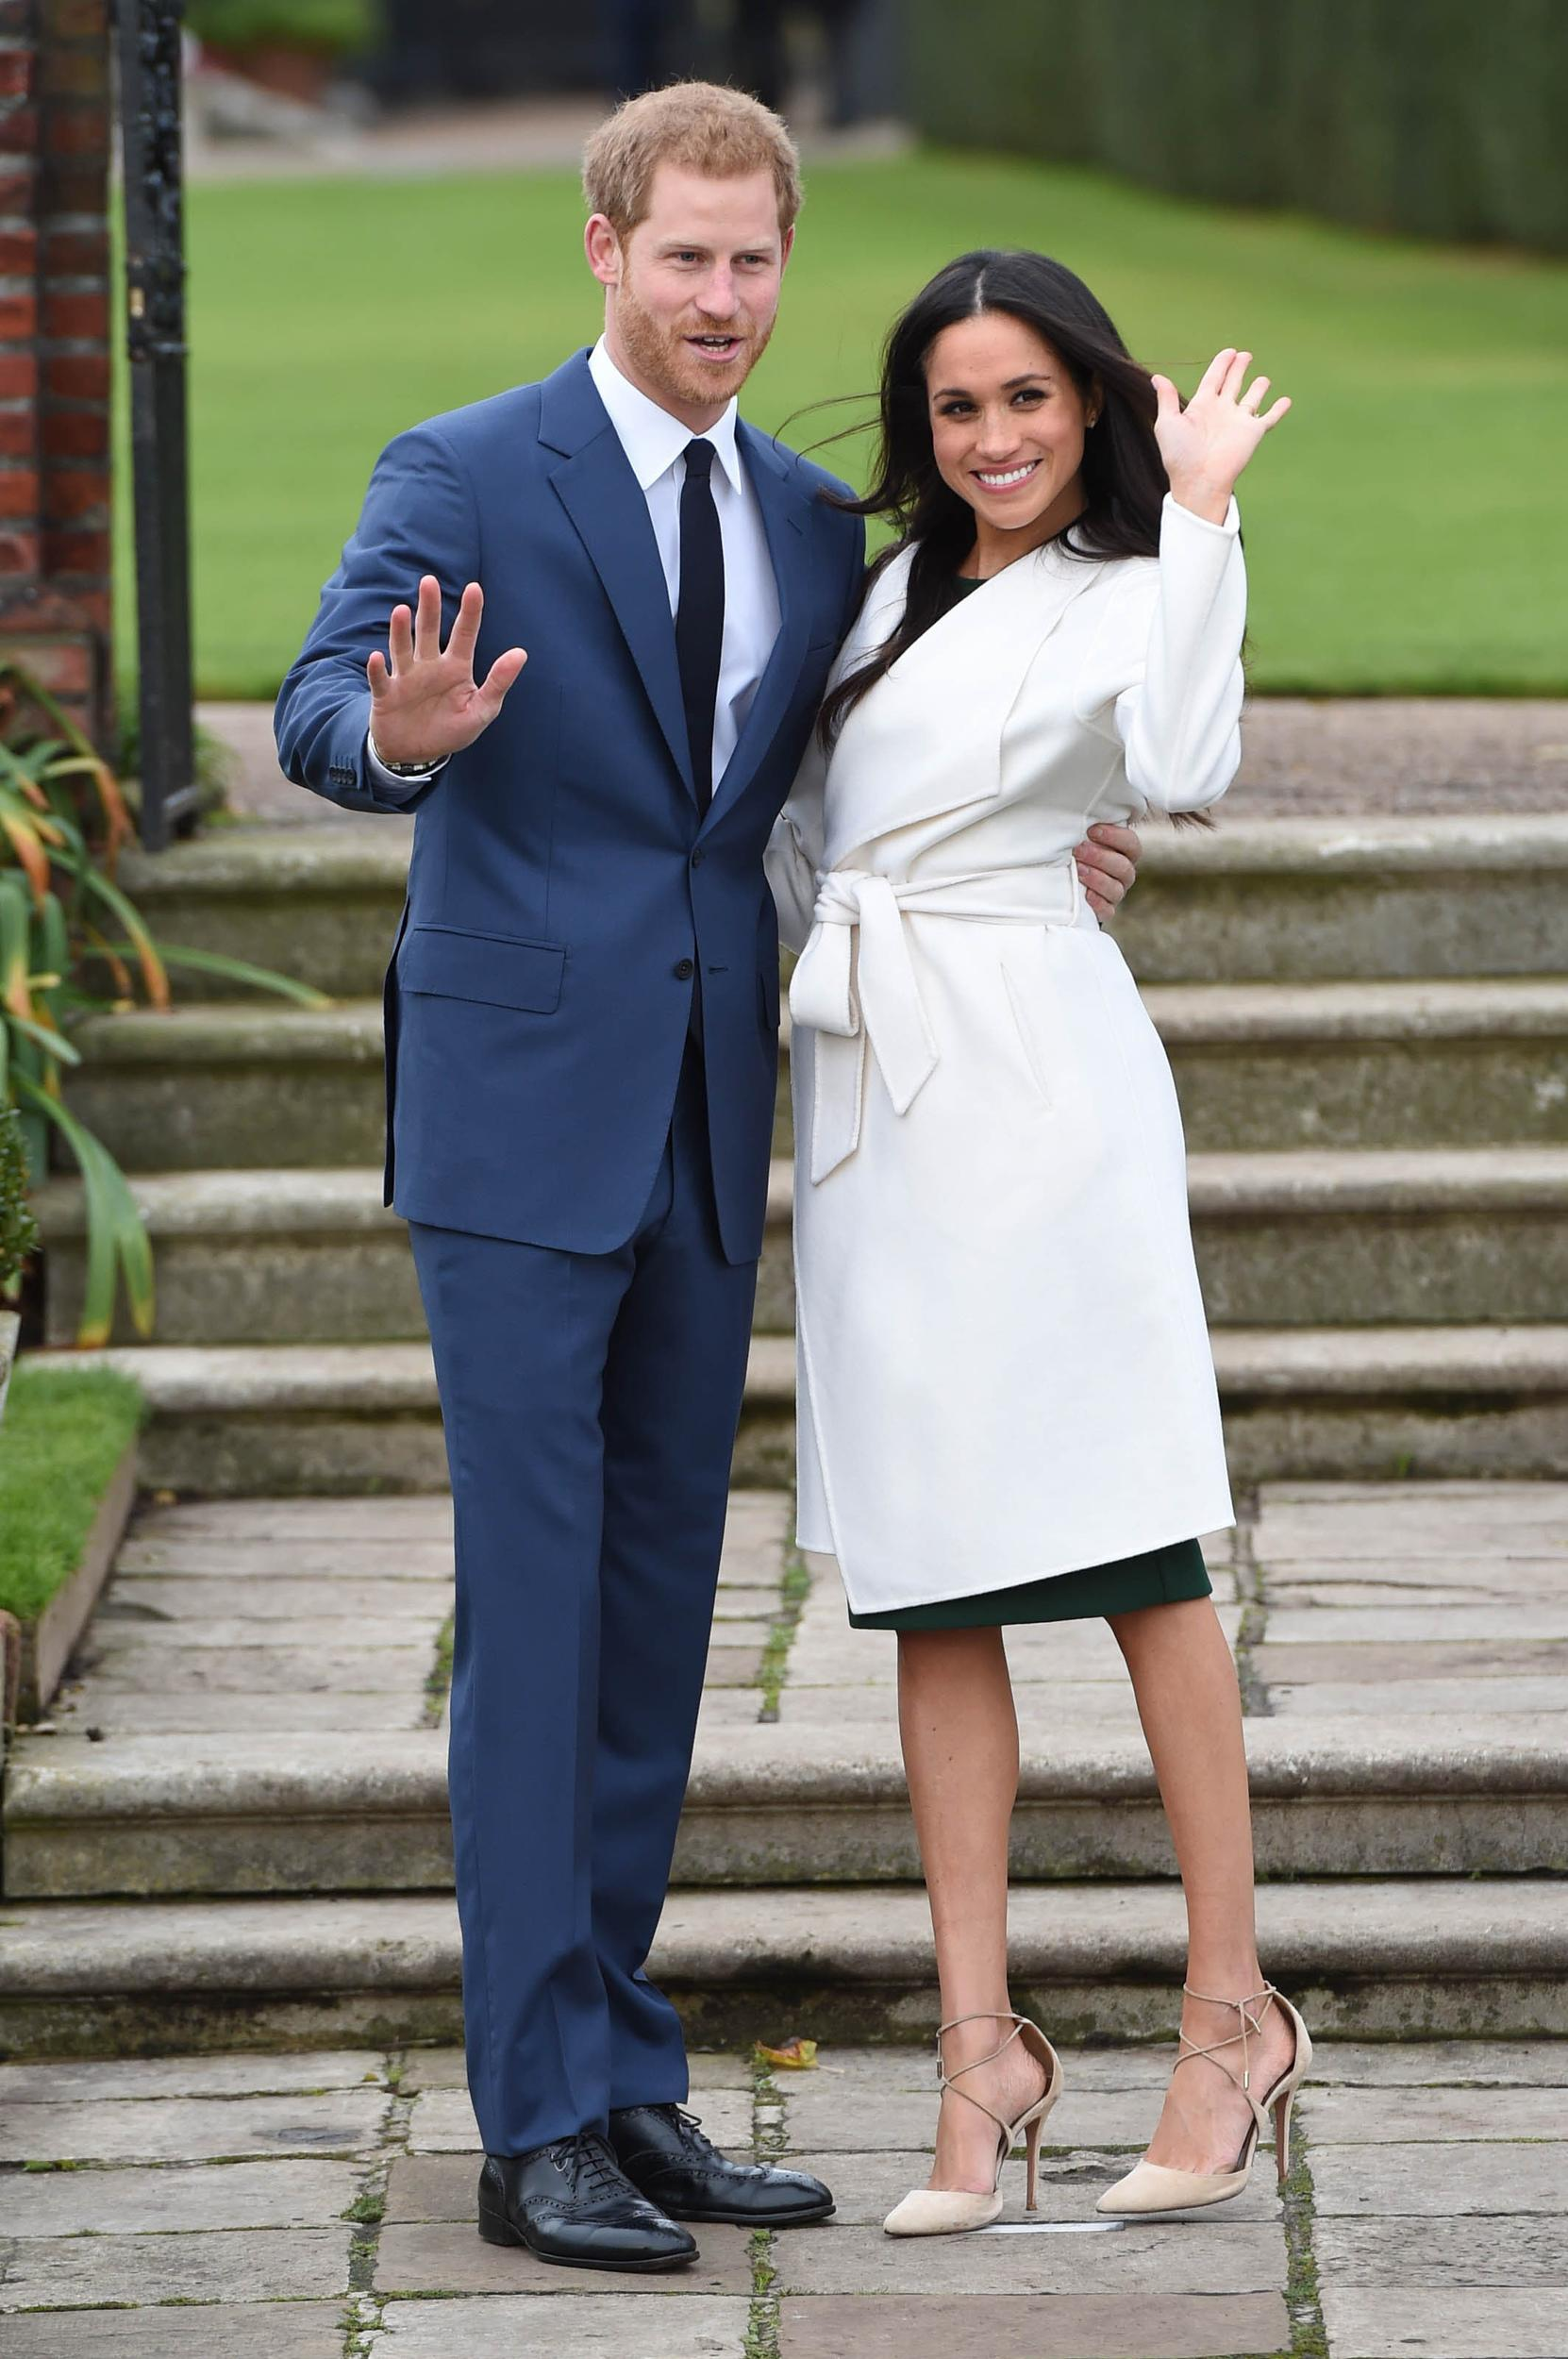 Prince Harry and Meghan Markle wedding date announced as May 19, 2018.   File Photo by: KGC-375/STAR MAX/IPx 2017 11/27/17 Prince Harry and Meghan Markle during an official photocall to announce the engagement of Prince Harry and actress Meghan Markle at The Sunken Gardens at Kensington Palace on November 27, 2017 in London, England.  His Royal Highness Prince Harry Of Wales and Ms. Meghan Markle are engaged to be married.  The wedding will take place in Spring 2018.  The couple became engaged in London earlier this month.  Prince Harry informed The Queen and other close members of his family and also sought and received the blessing of Ms. Markle's parents. (London, England, UK)